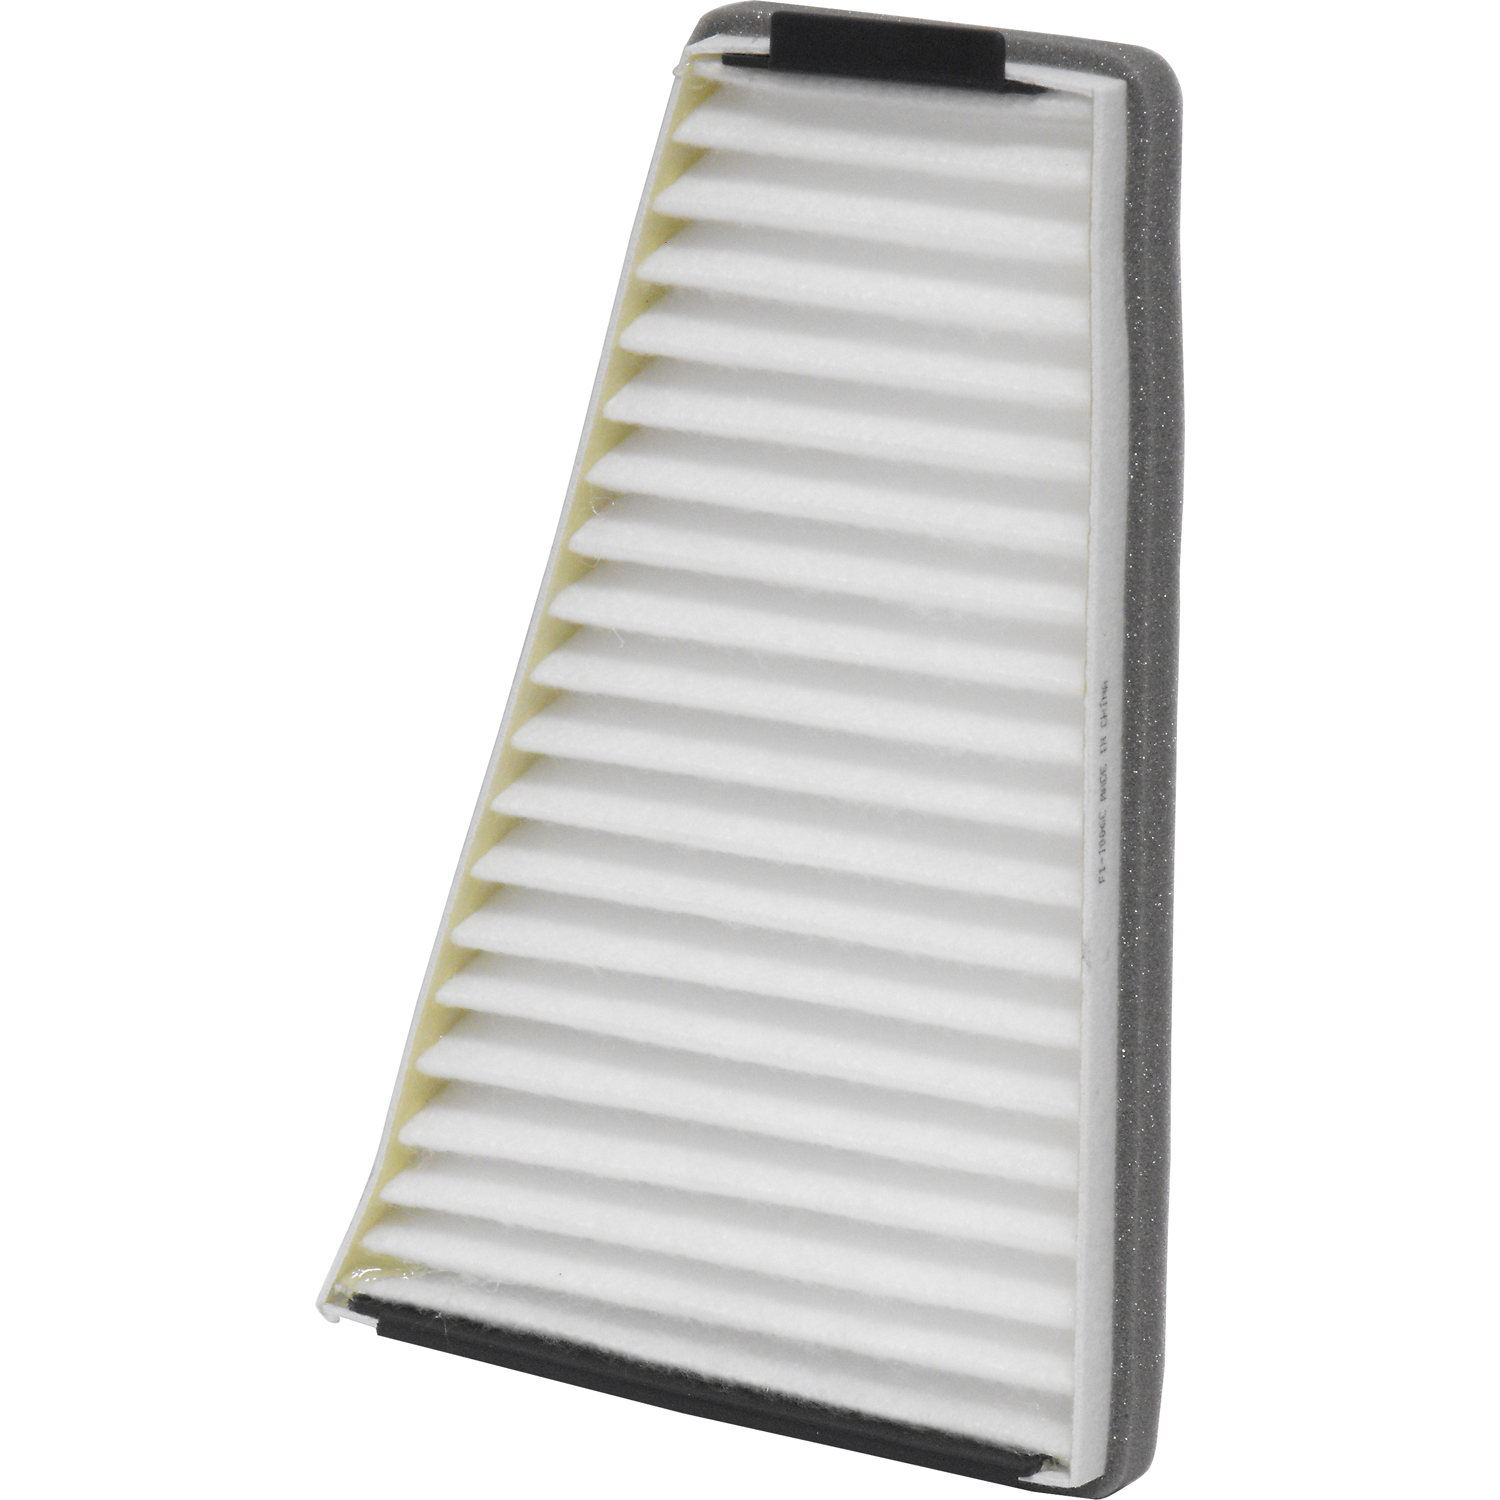 Particulate Cabin Air Filter FRD CARS 98-96